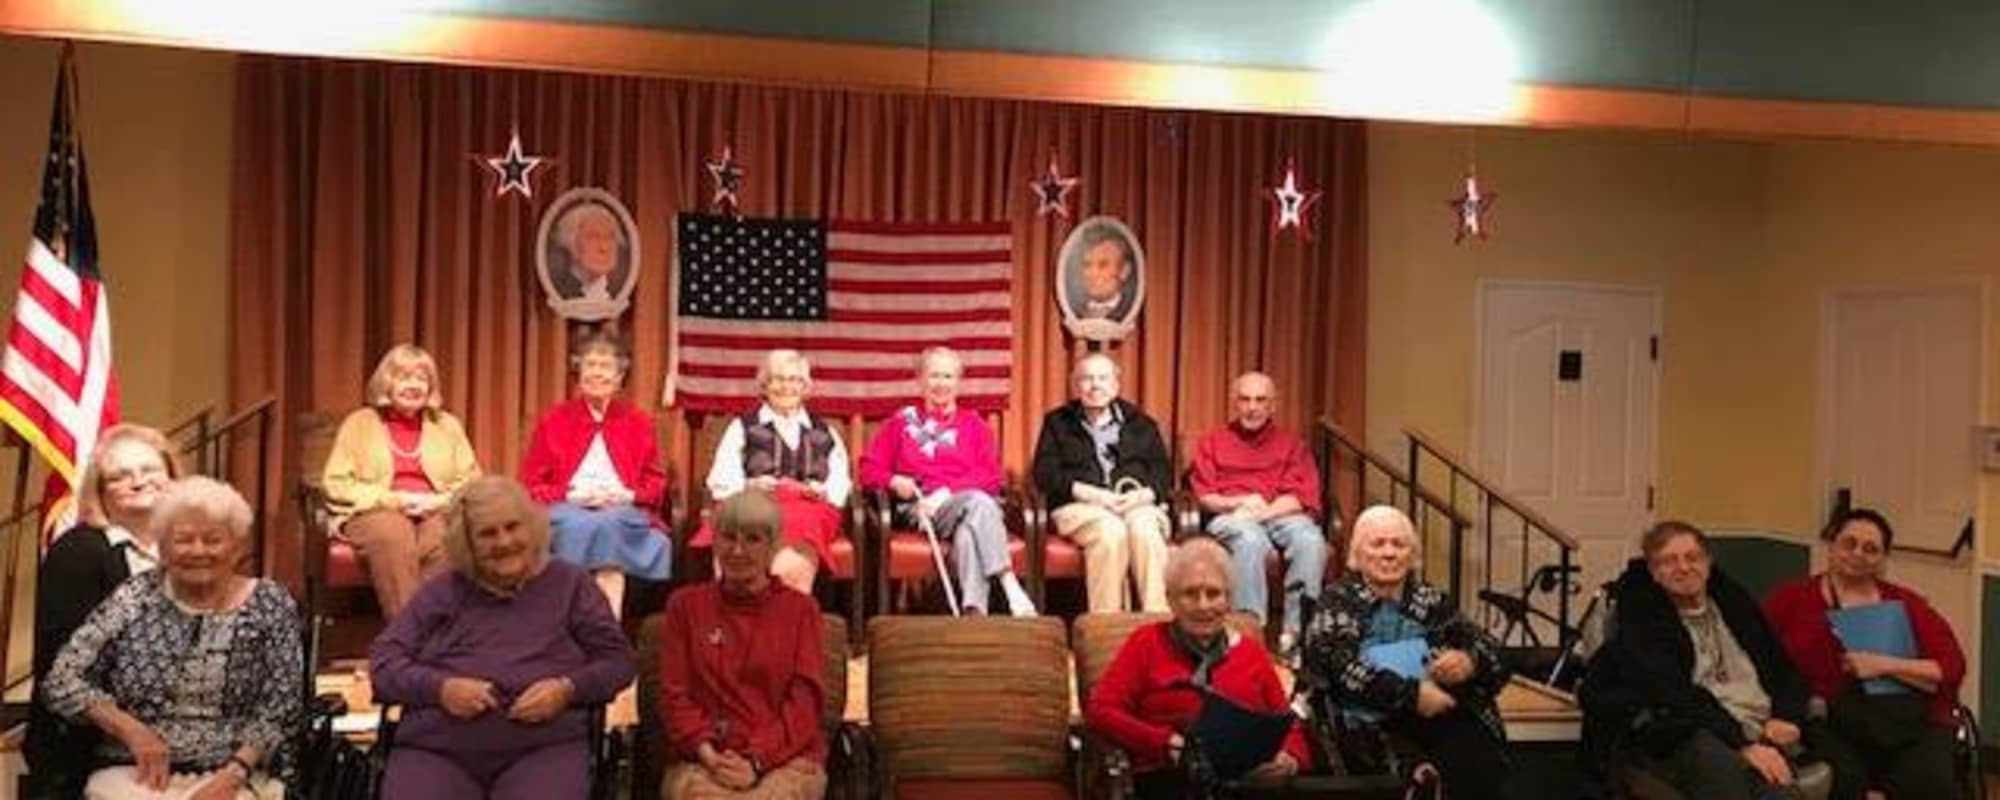 Patriotic seniors at Cottonwood Creek in Salt Lake City, Utah